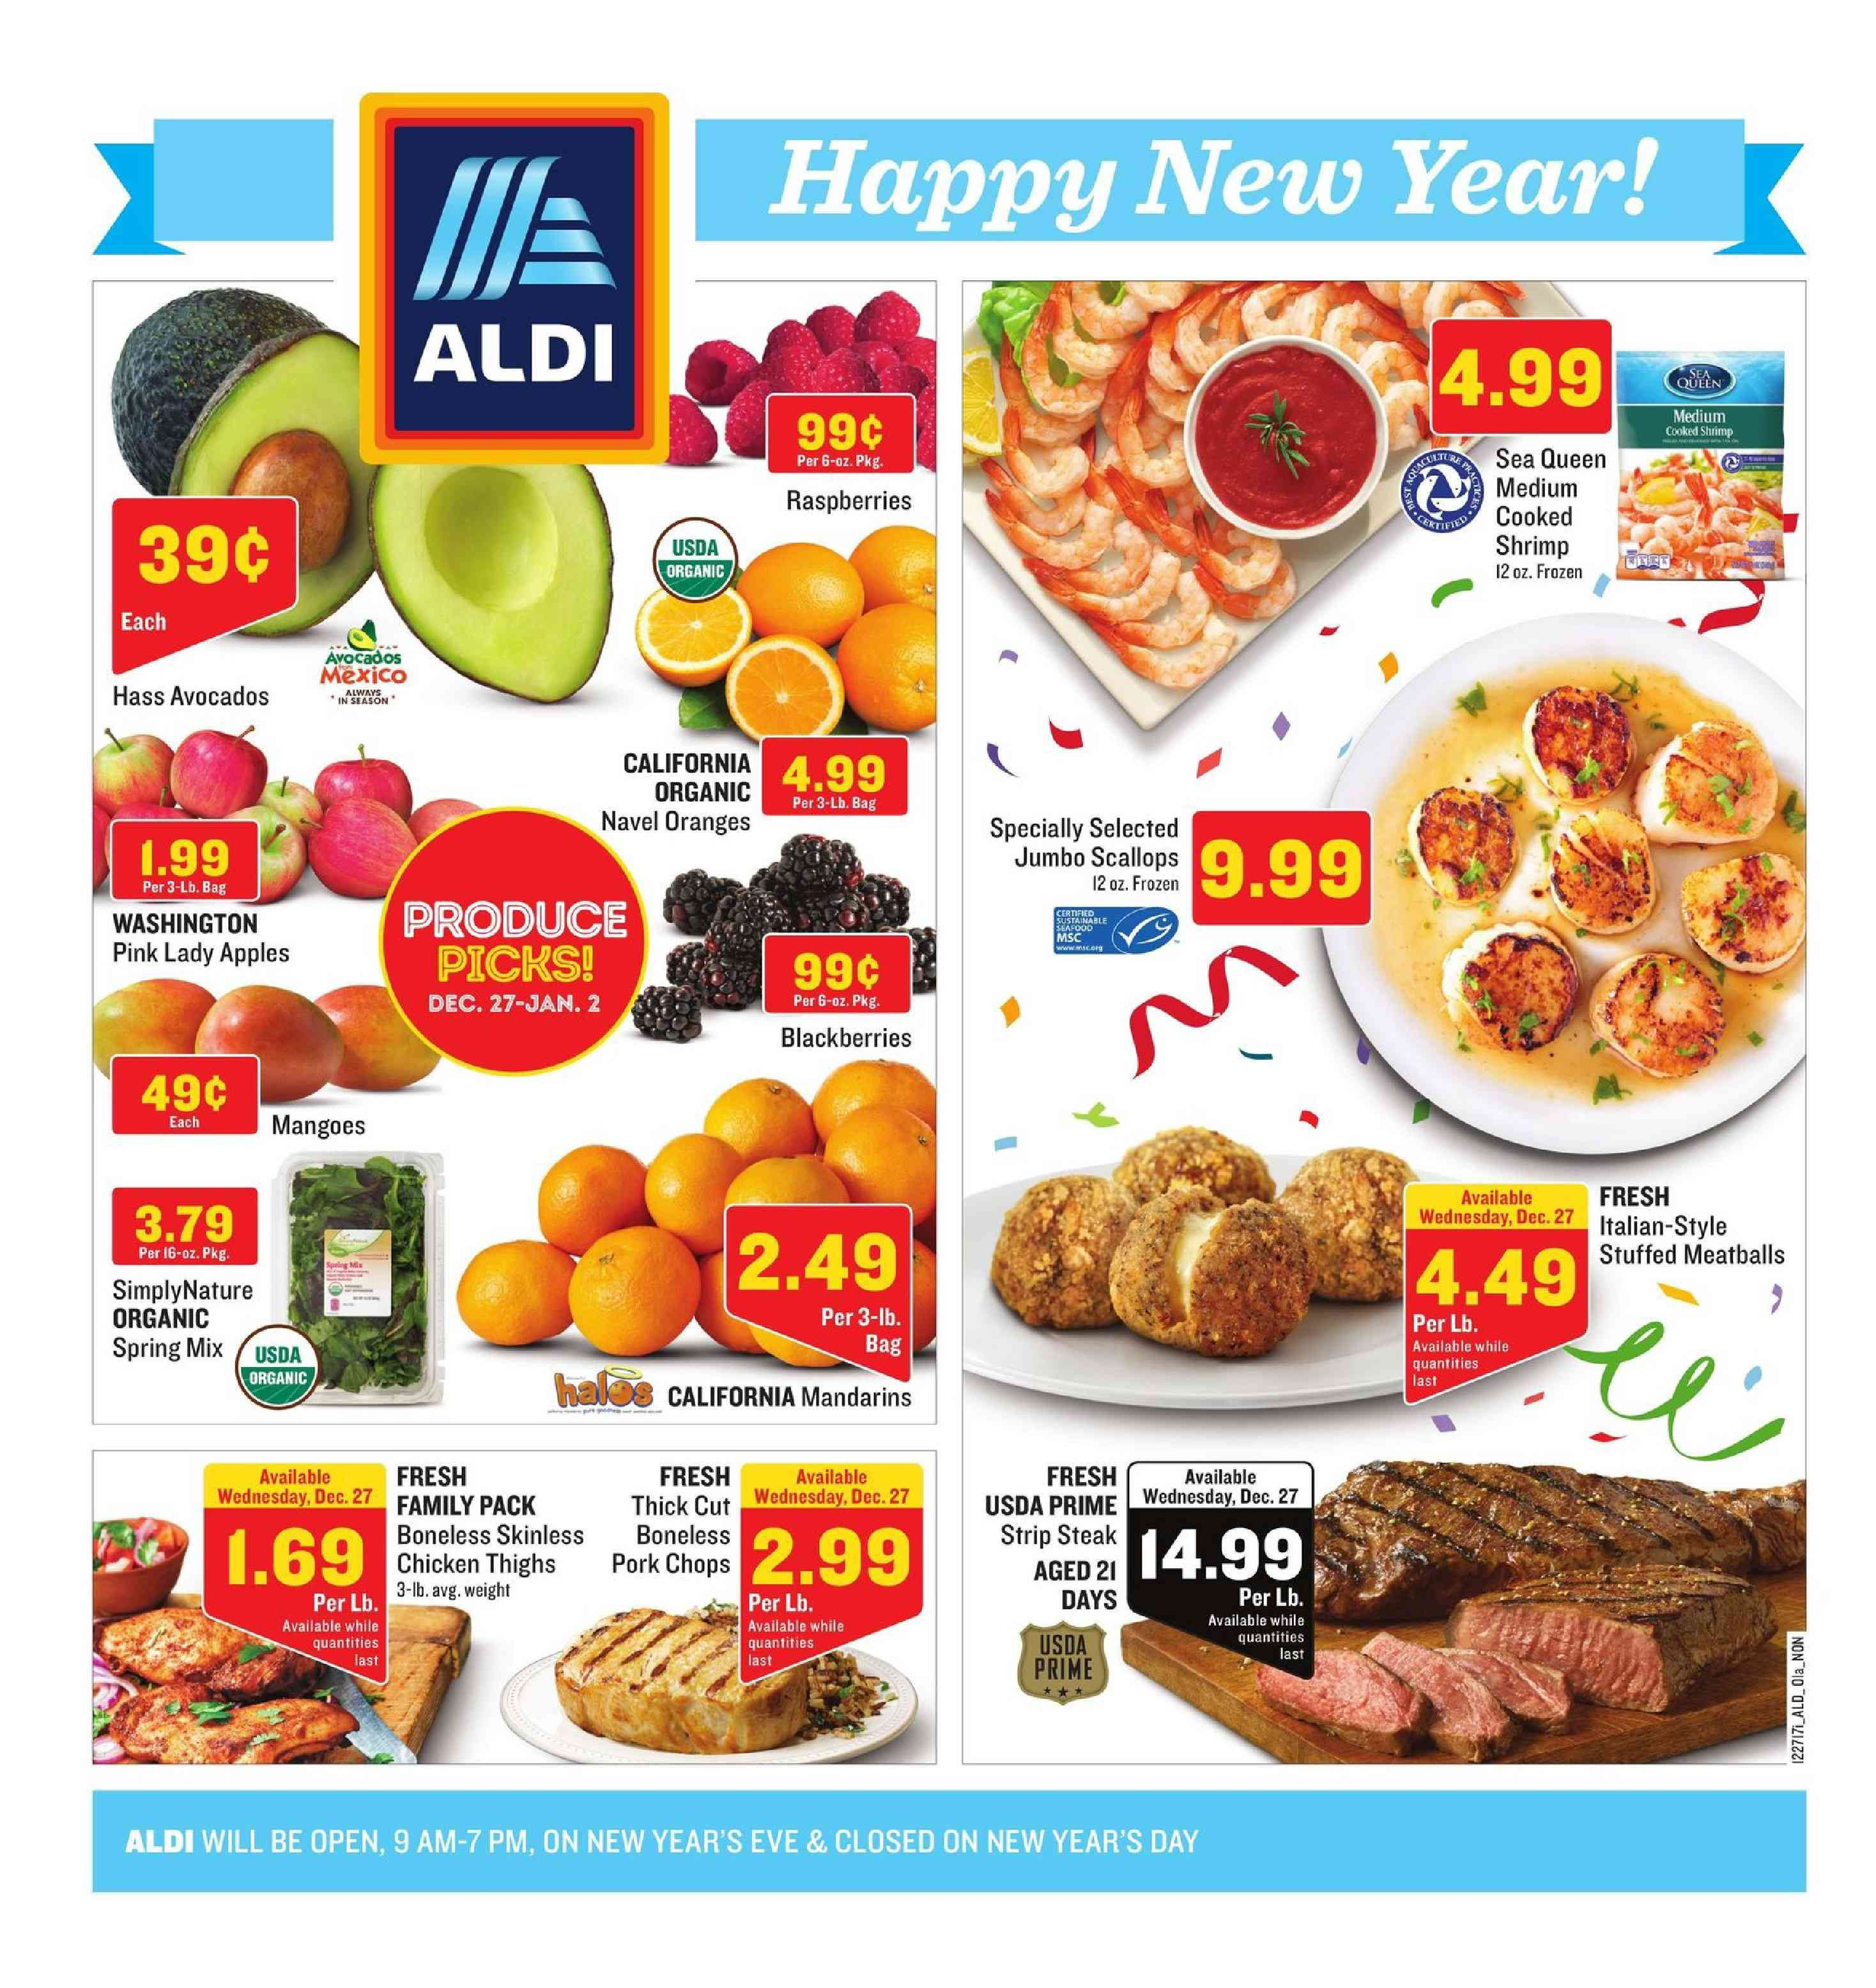 Aldi Weekly Ad January 31 February 6 2018 Browse Aldi Ad Specials And Weekly Fresh Meat Specials From Aldi Here Find Digital Cou Aldi Bakery Menu Grocery